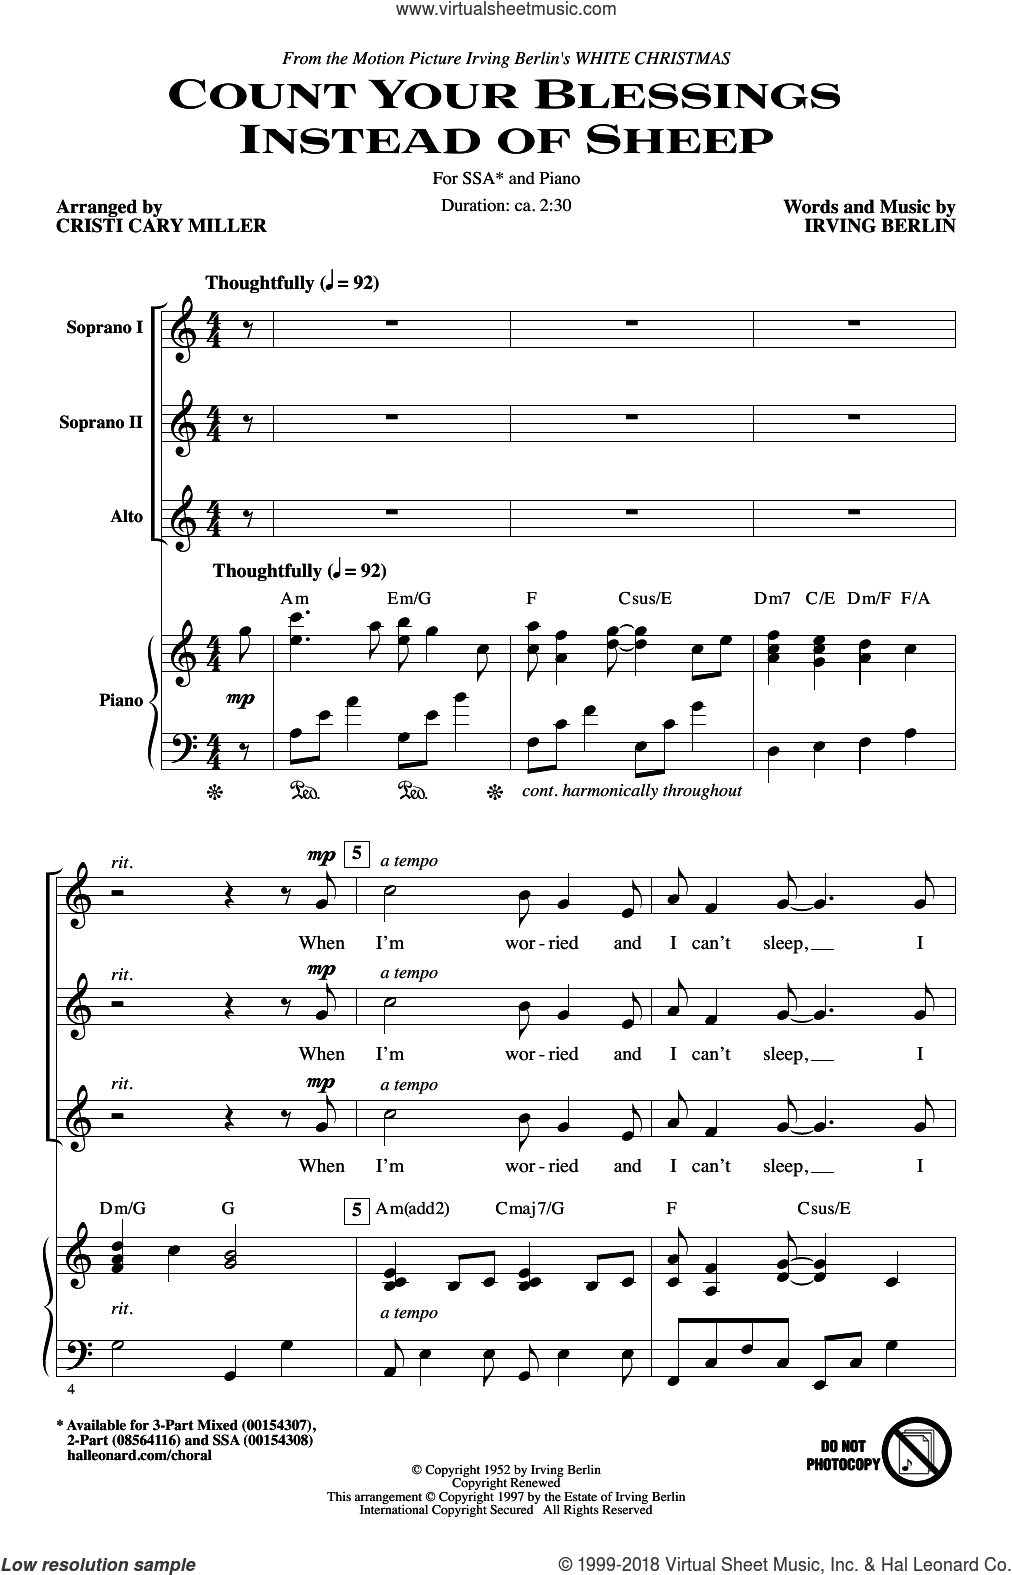 Count Your Blessings Instead Of Sheep (arr. Cristi Cary Miller) sheet music for choir (SSA: soprano, alto) by Irving Berlin, Cristi Cary Miller, Cristi Miller, Bing Crosby and Rosemary Clooney and Eddie Fisher, intermediate skill level